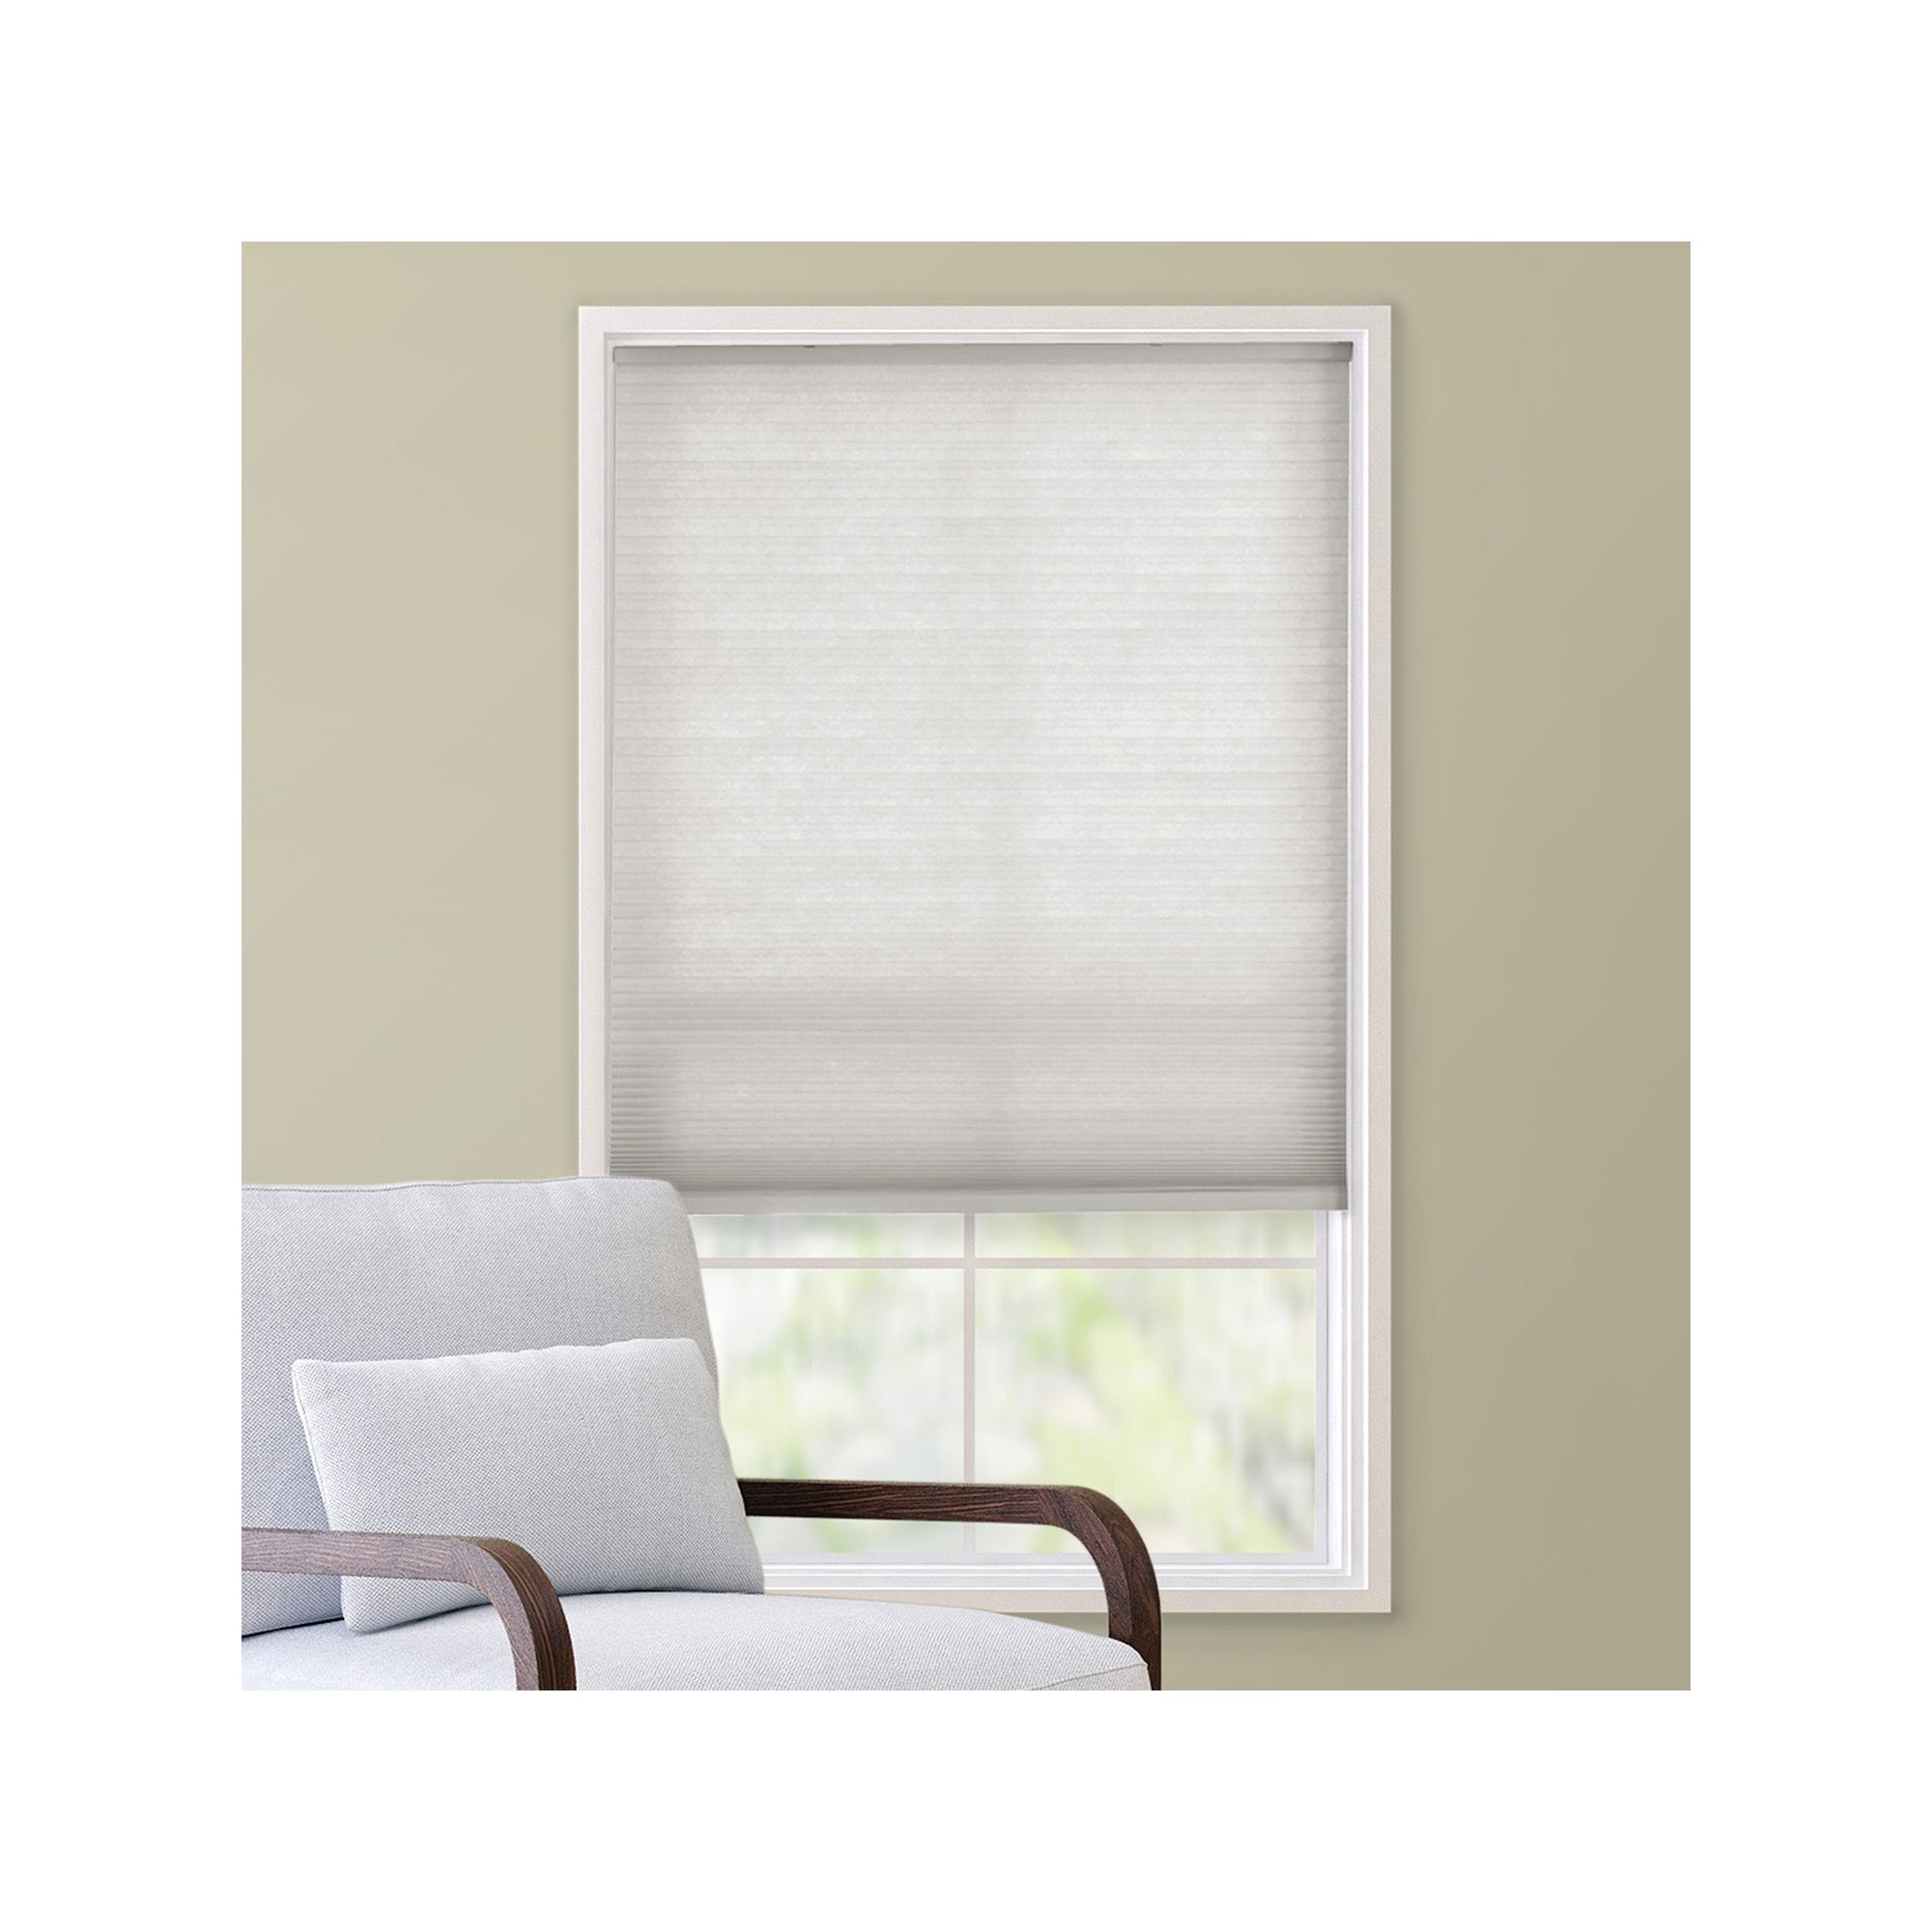 House window shade design  custom cut to order cordless cellular shade  uu length white